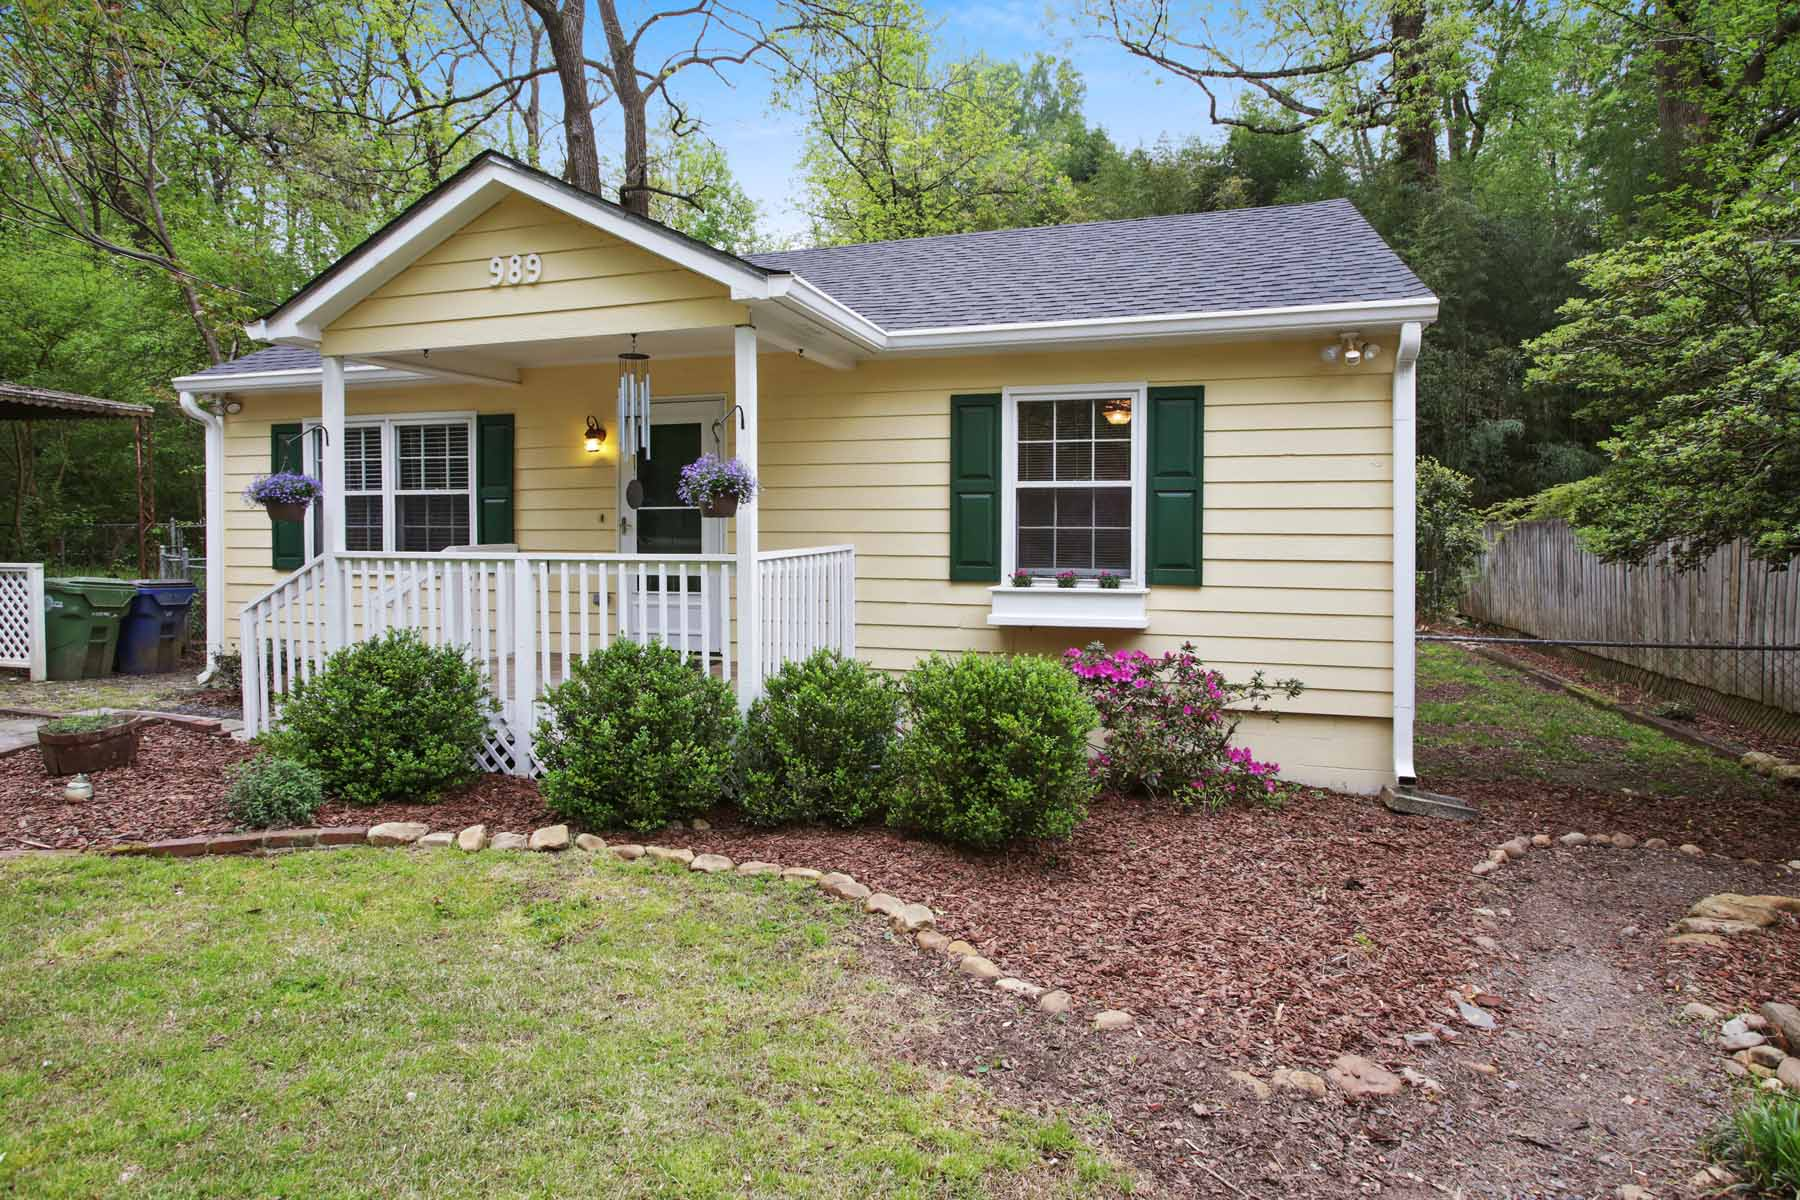 Additional photo for property listing at Amazing Value for 21 Updated Ormewood Park Bungalow! 989 Ormewood Avenue SE Atlanta, Georgien 30316 Usa